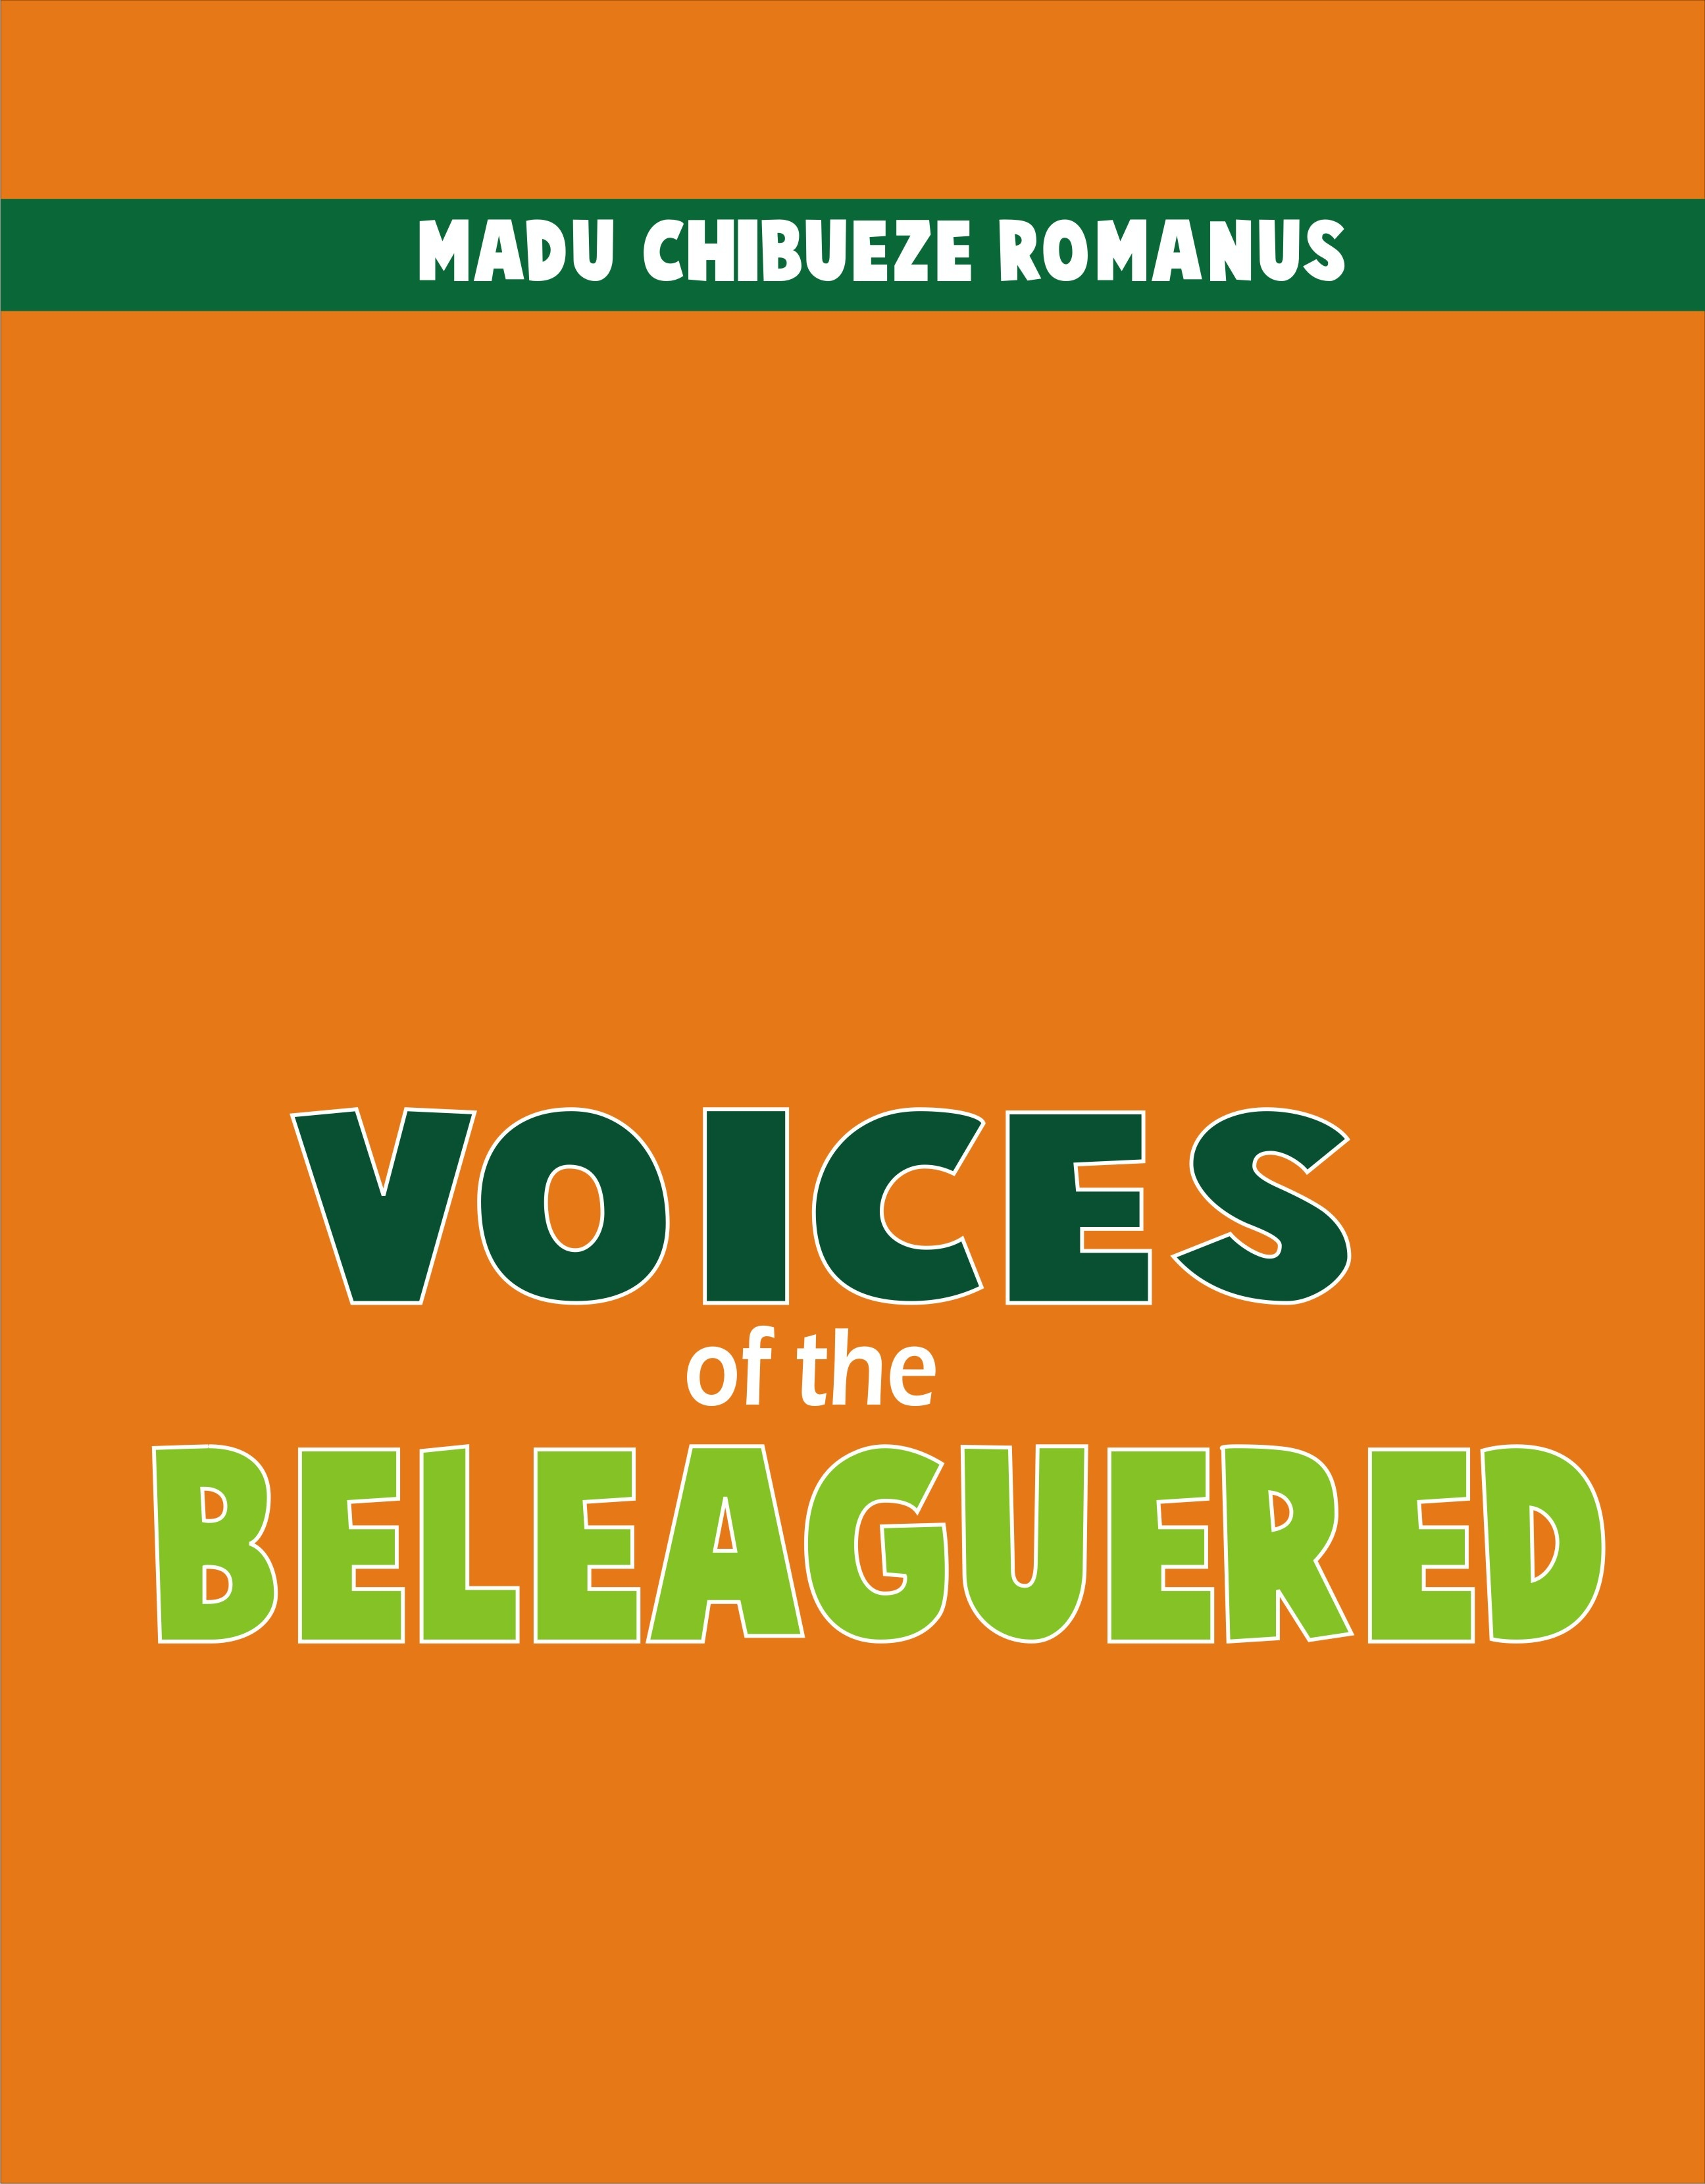 VOICES OF THE BELEAGUERED